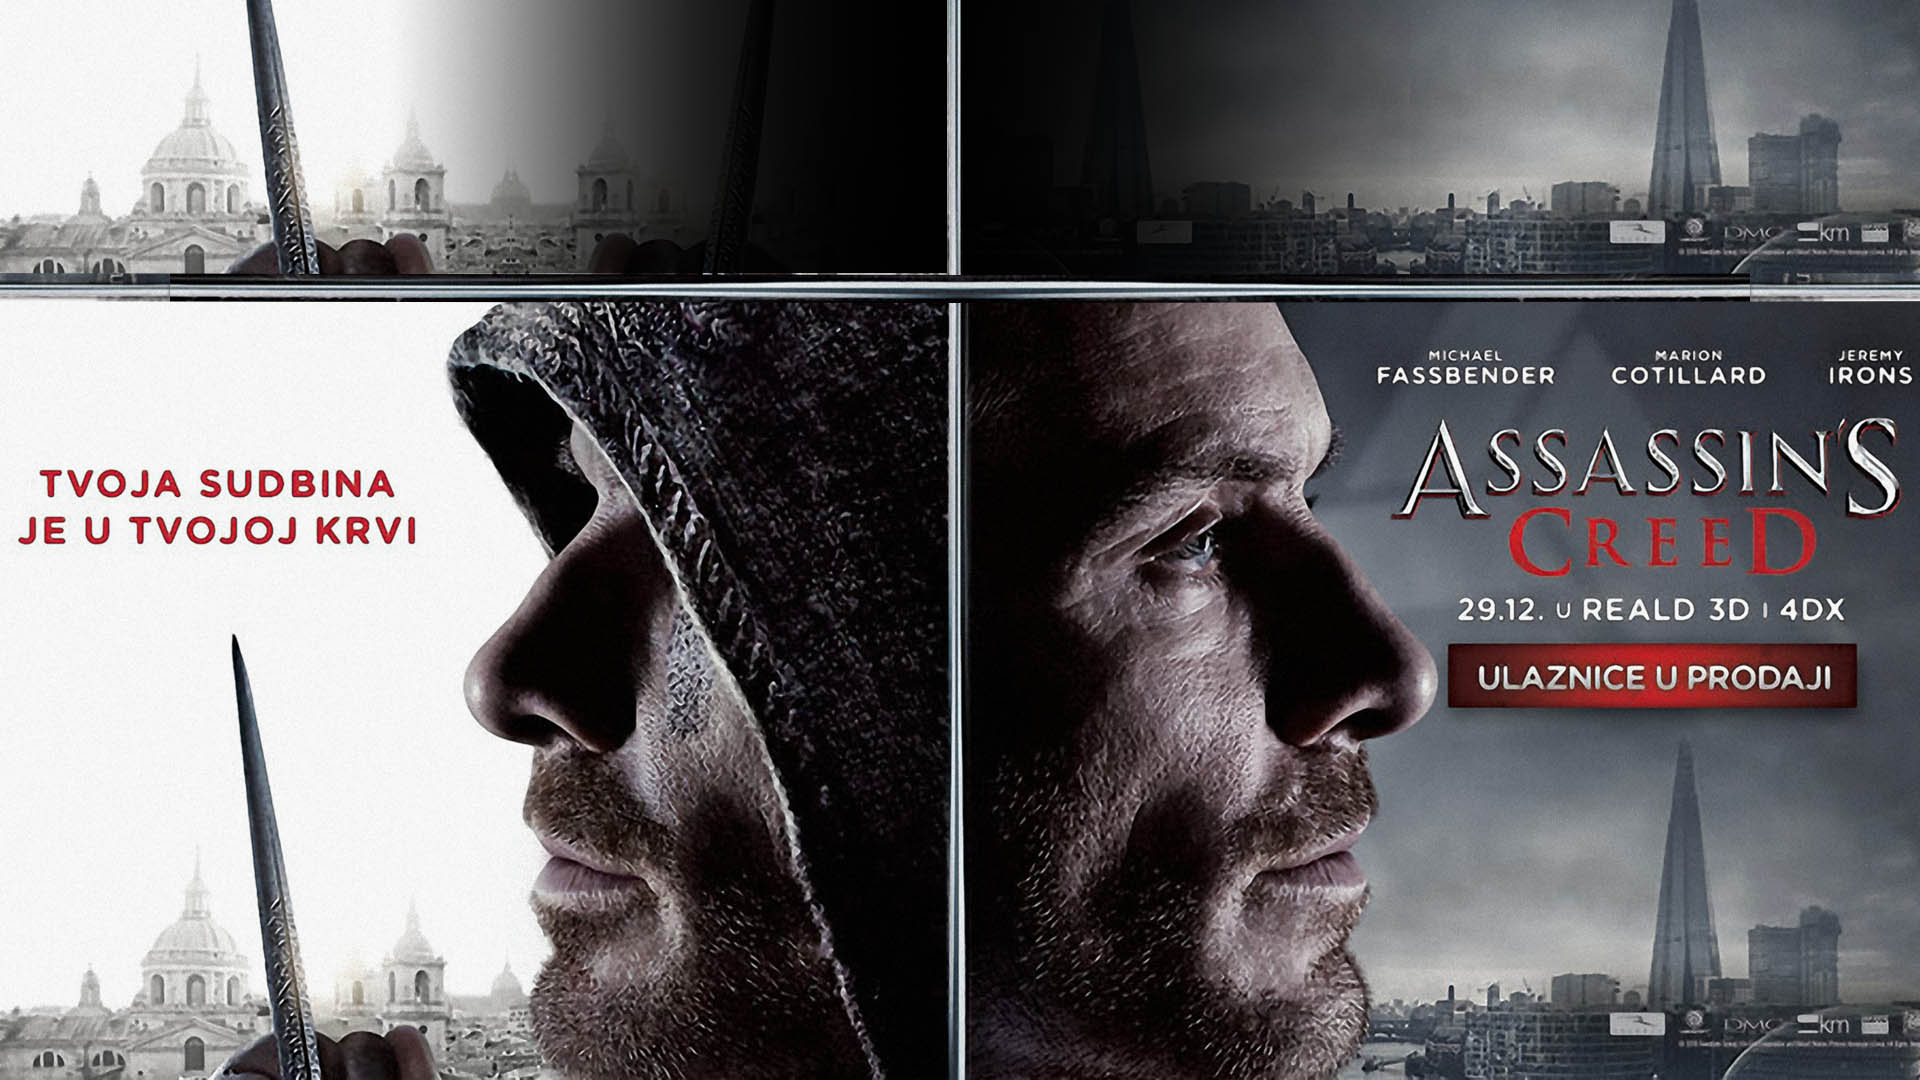 Krenula je prodaja ulaznica za film ASSASSINS'S CREED